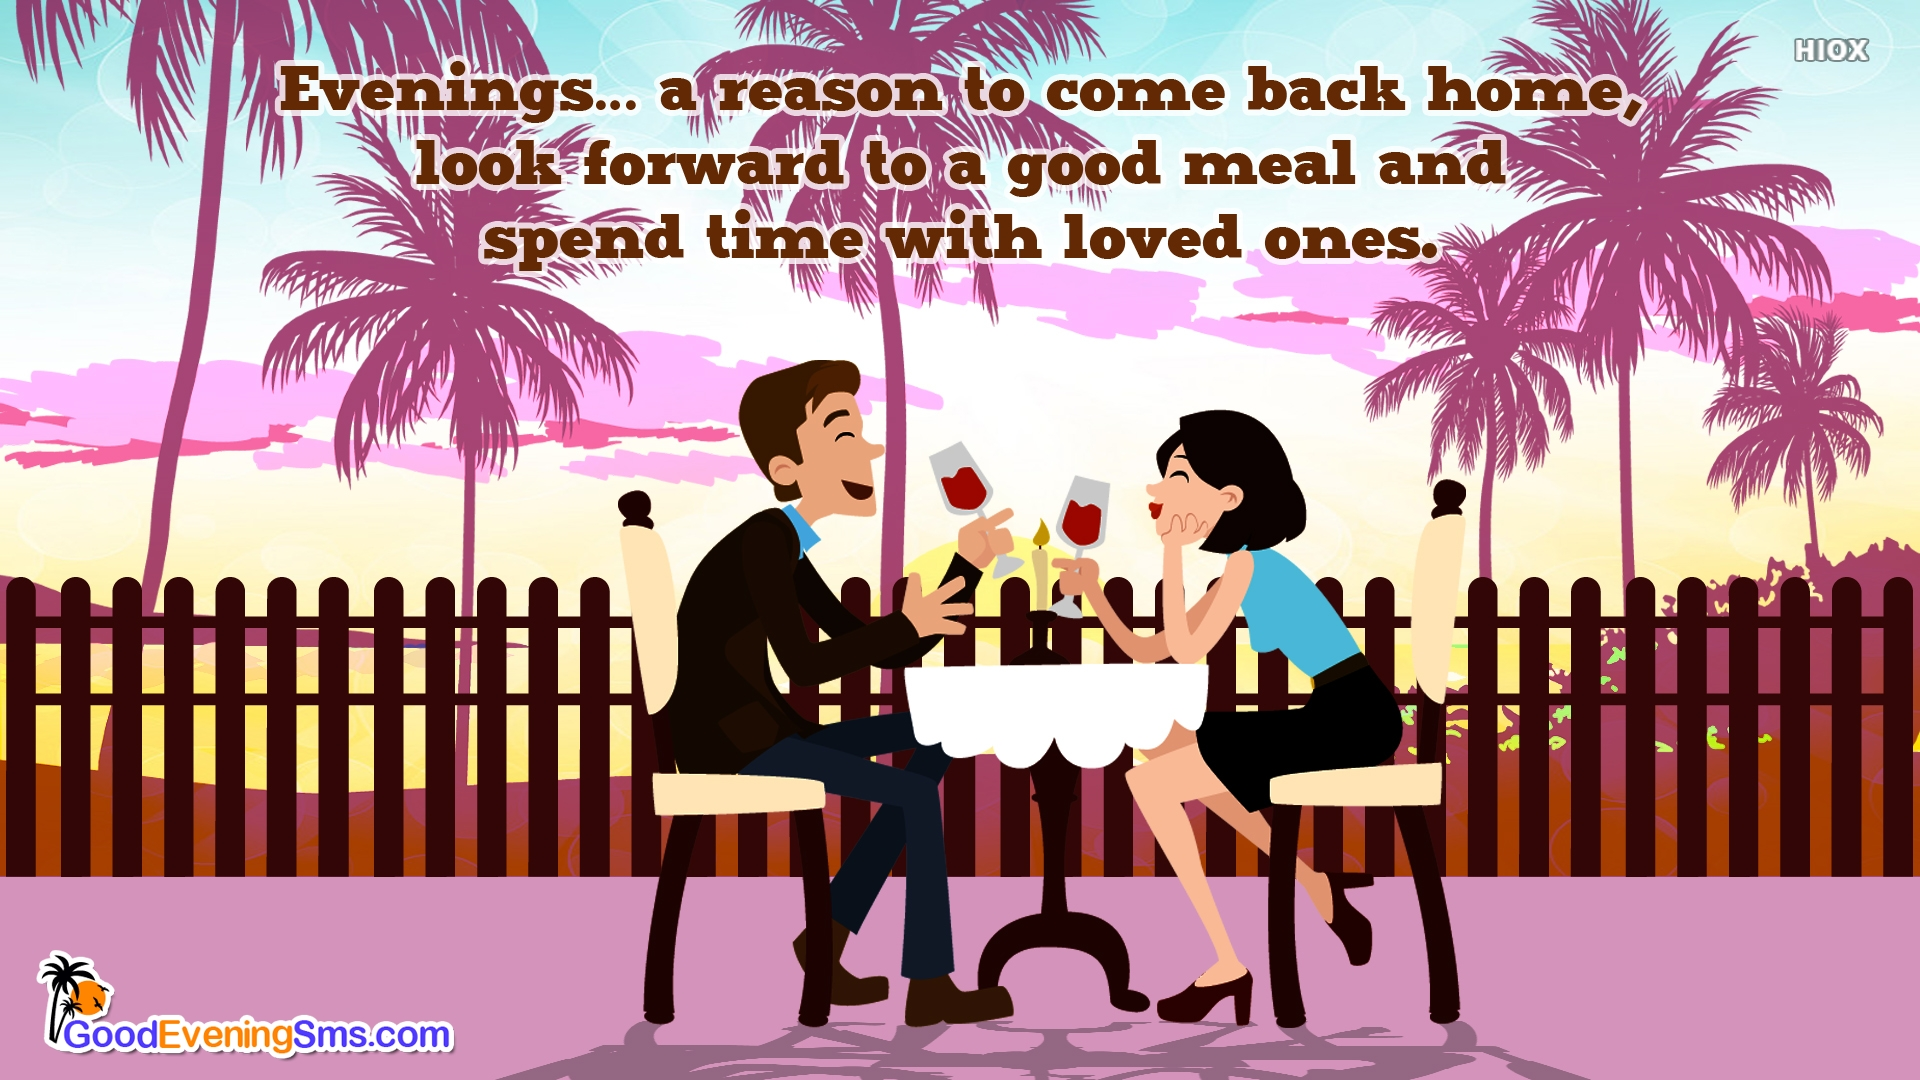 Evenings… A Reason To Come Back Home, Look Forward To A Good Meal and Spend Time With Loved Ones.